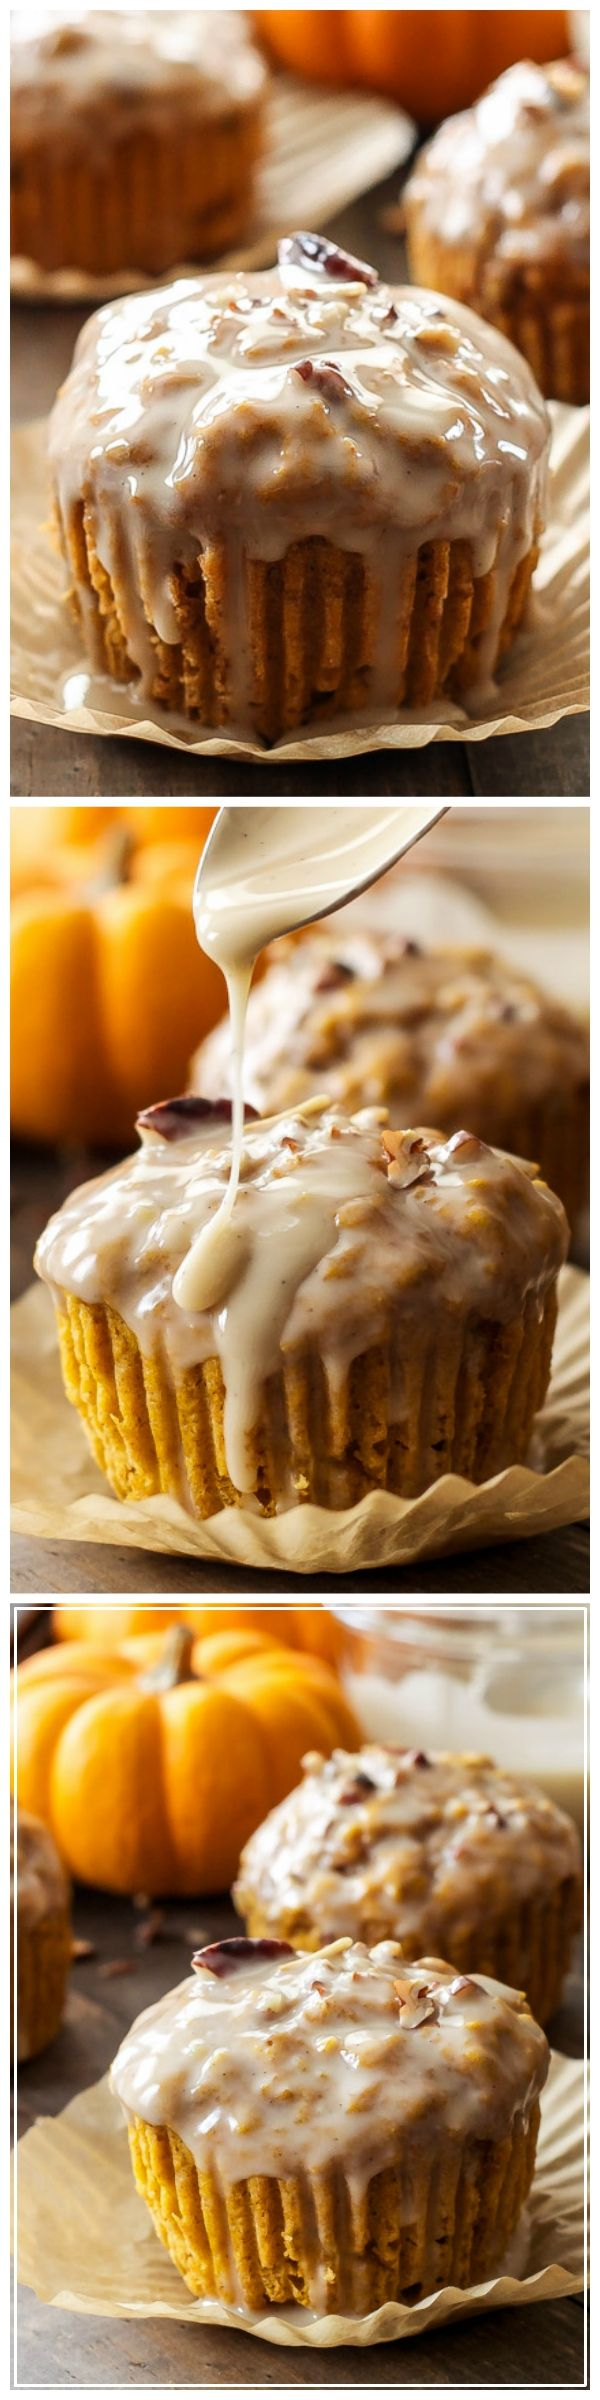 Pumpkin Pecan Muffins with Bourbon Maple Glaze - Pumpkin spiced muffins filled with toasted pecans and dipped in a sweet and boozy bourbon maple glaze! A must make this fall and holiday season!